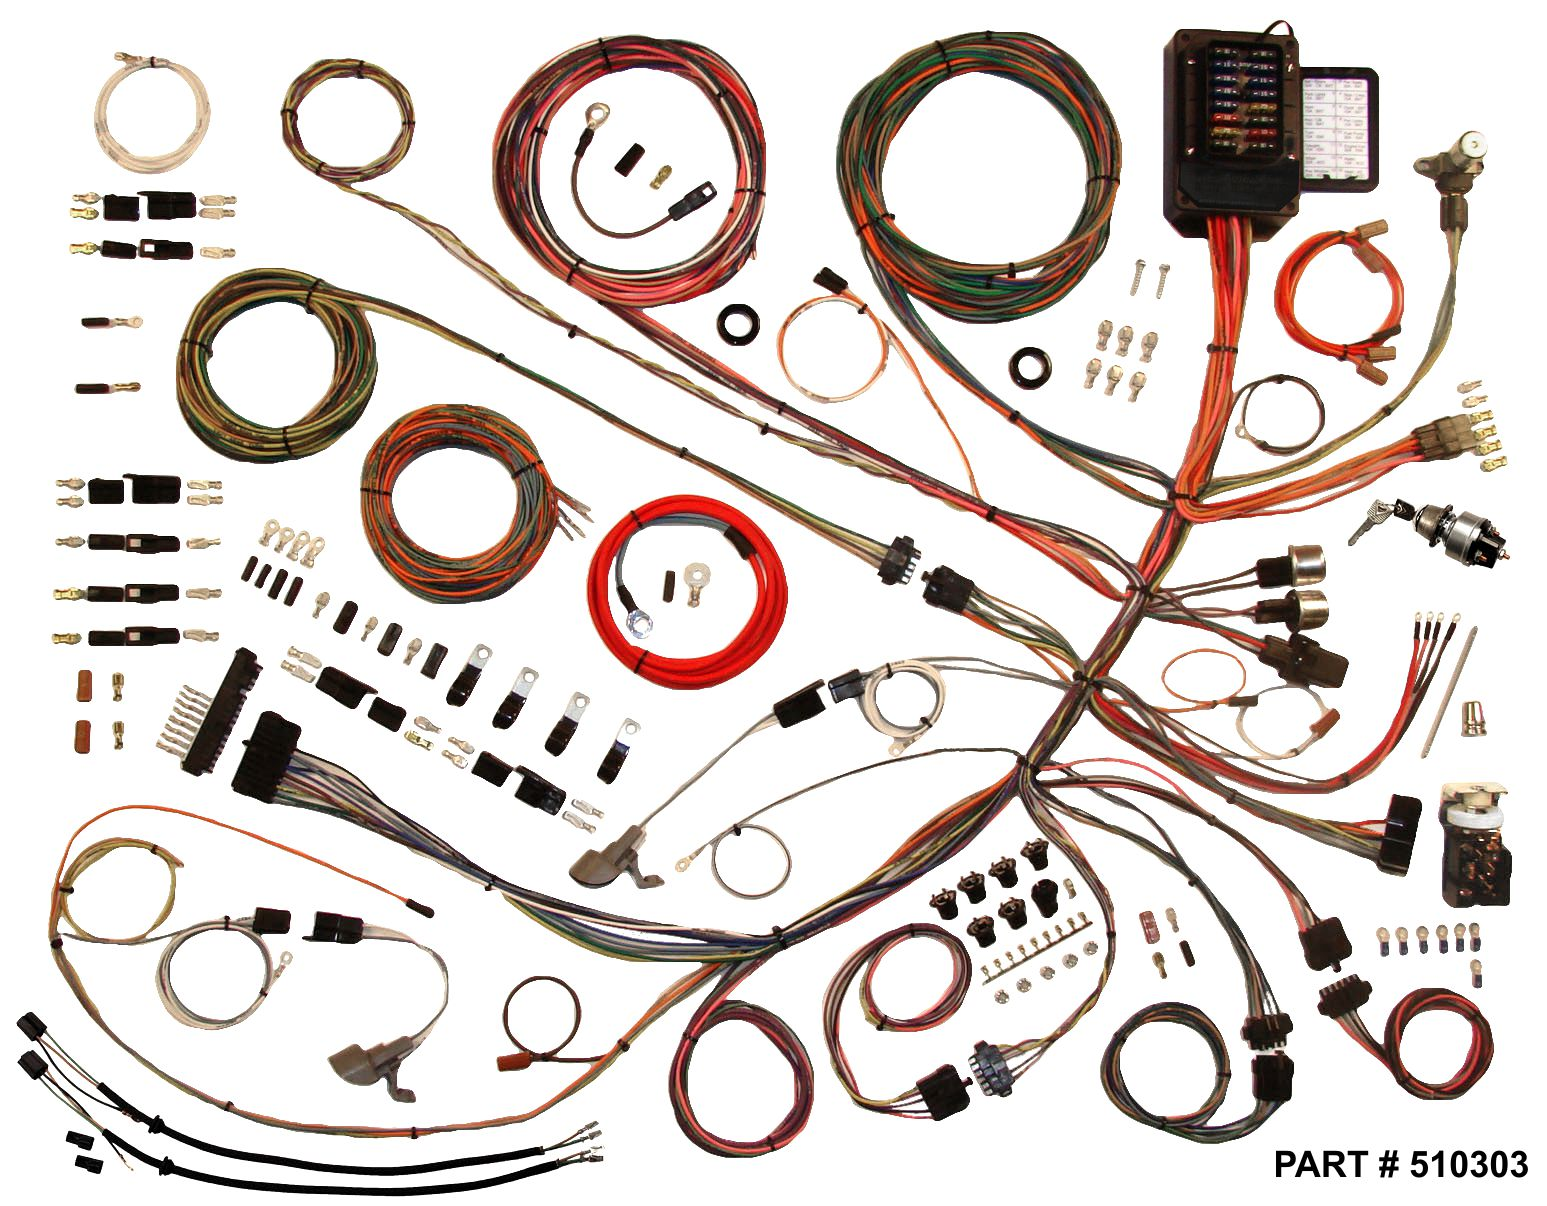 1953 56_510303 1953 1956 ford f100 trucks restomod wiring system 1967 ford f100 wiring harness at edmiracle.co